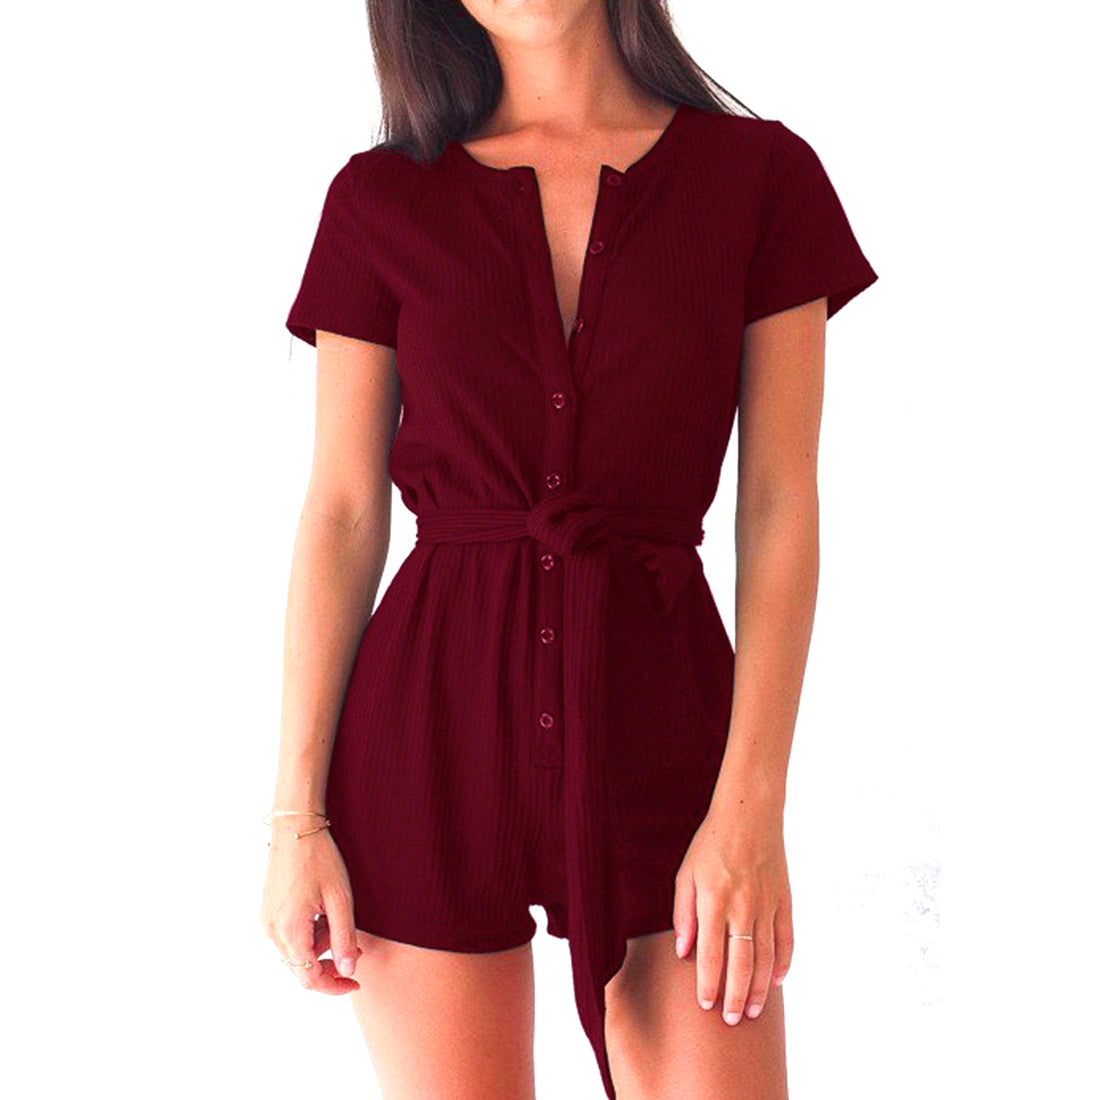 Best Seller! Short Sleeve V-neck Rompers